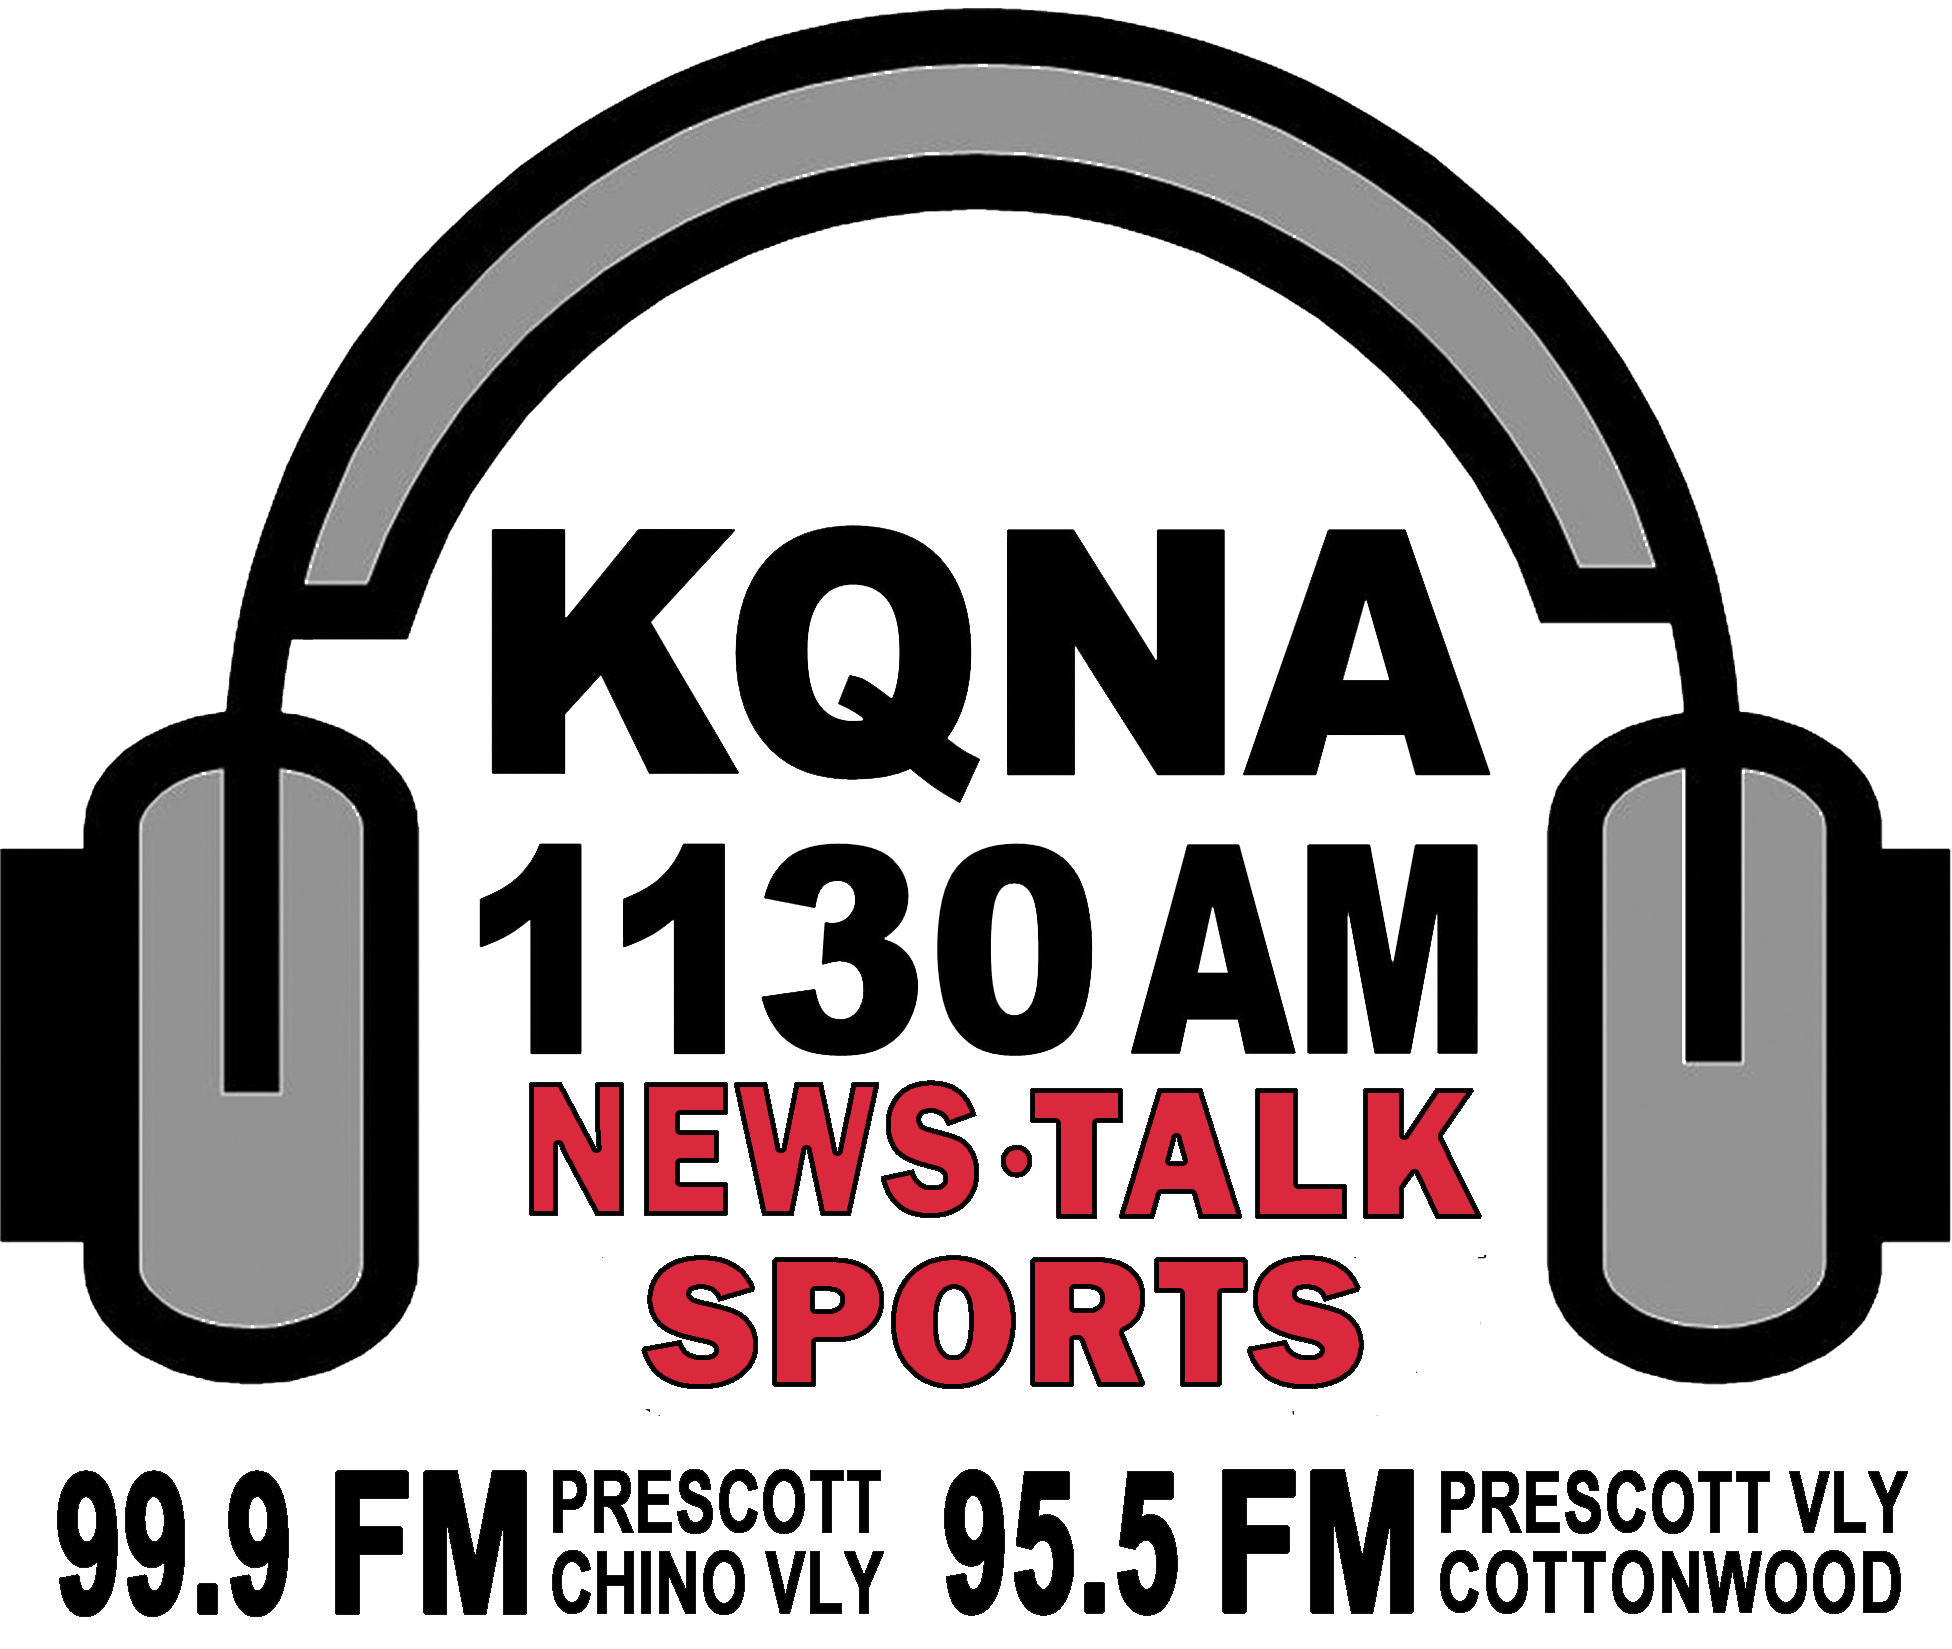 KQNA 1130 AM - NEWS, TALK, SPORTS